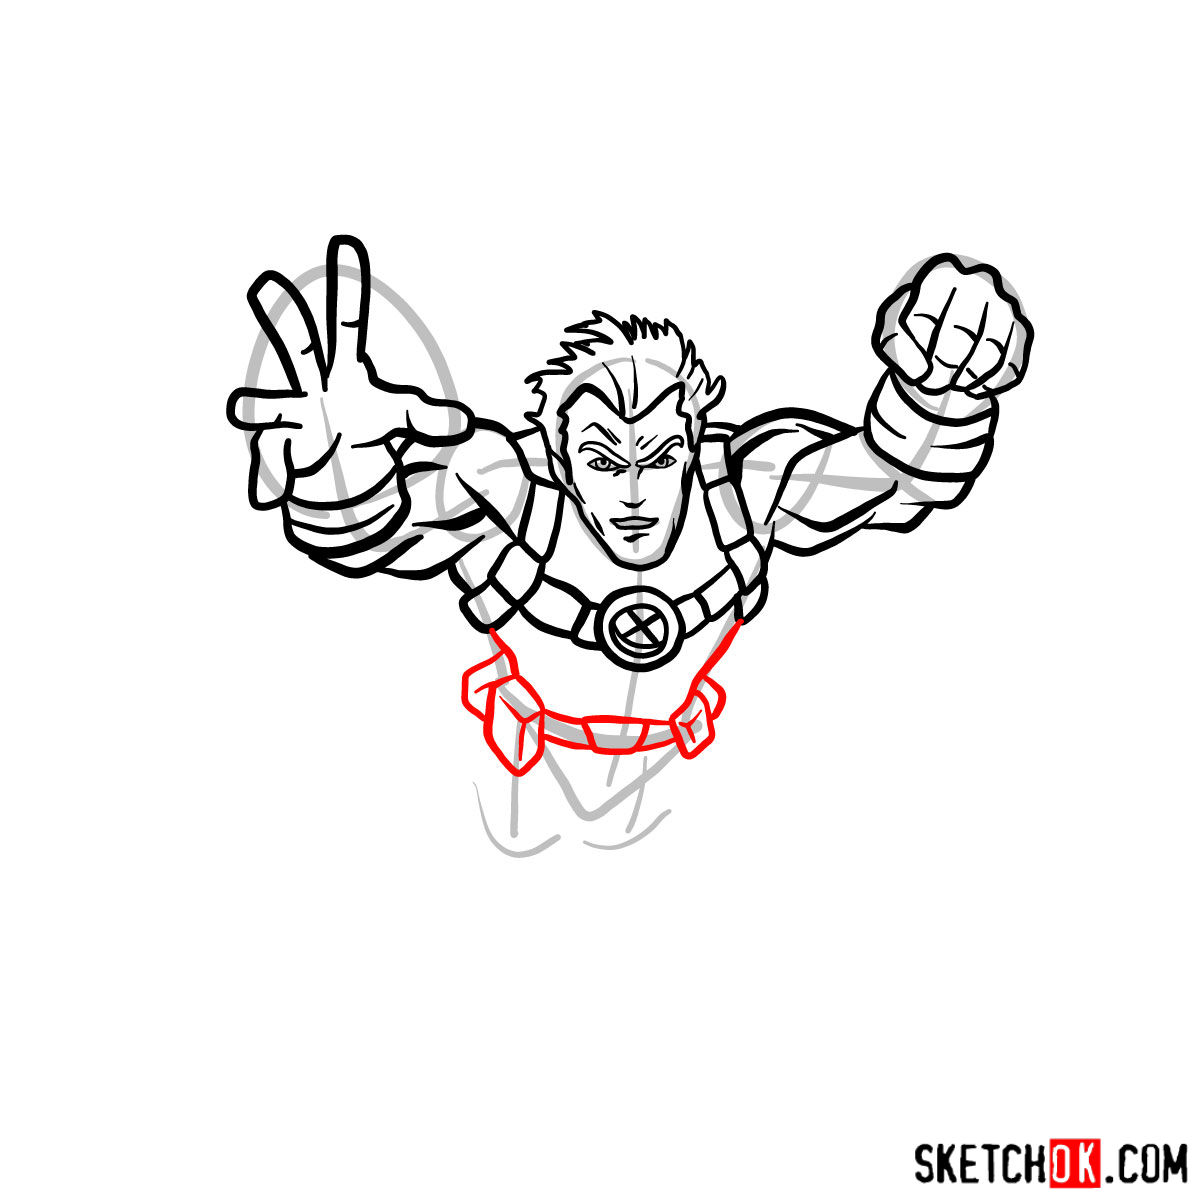 How to draw Cannonball, a mutant from X-Men series - step 08